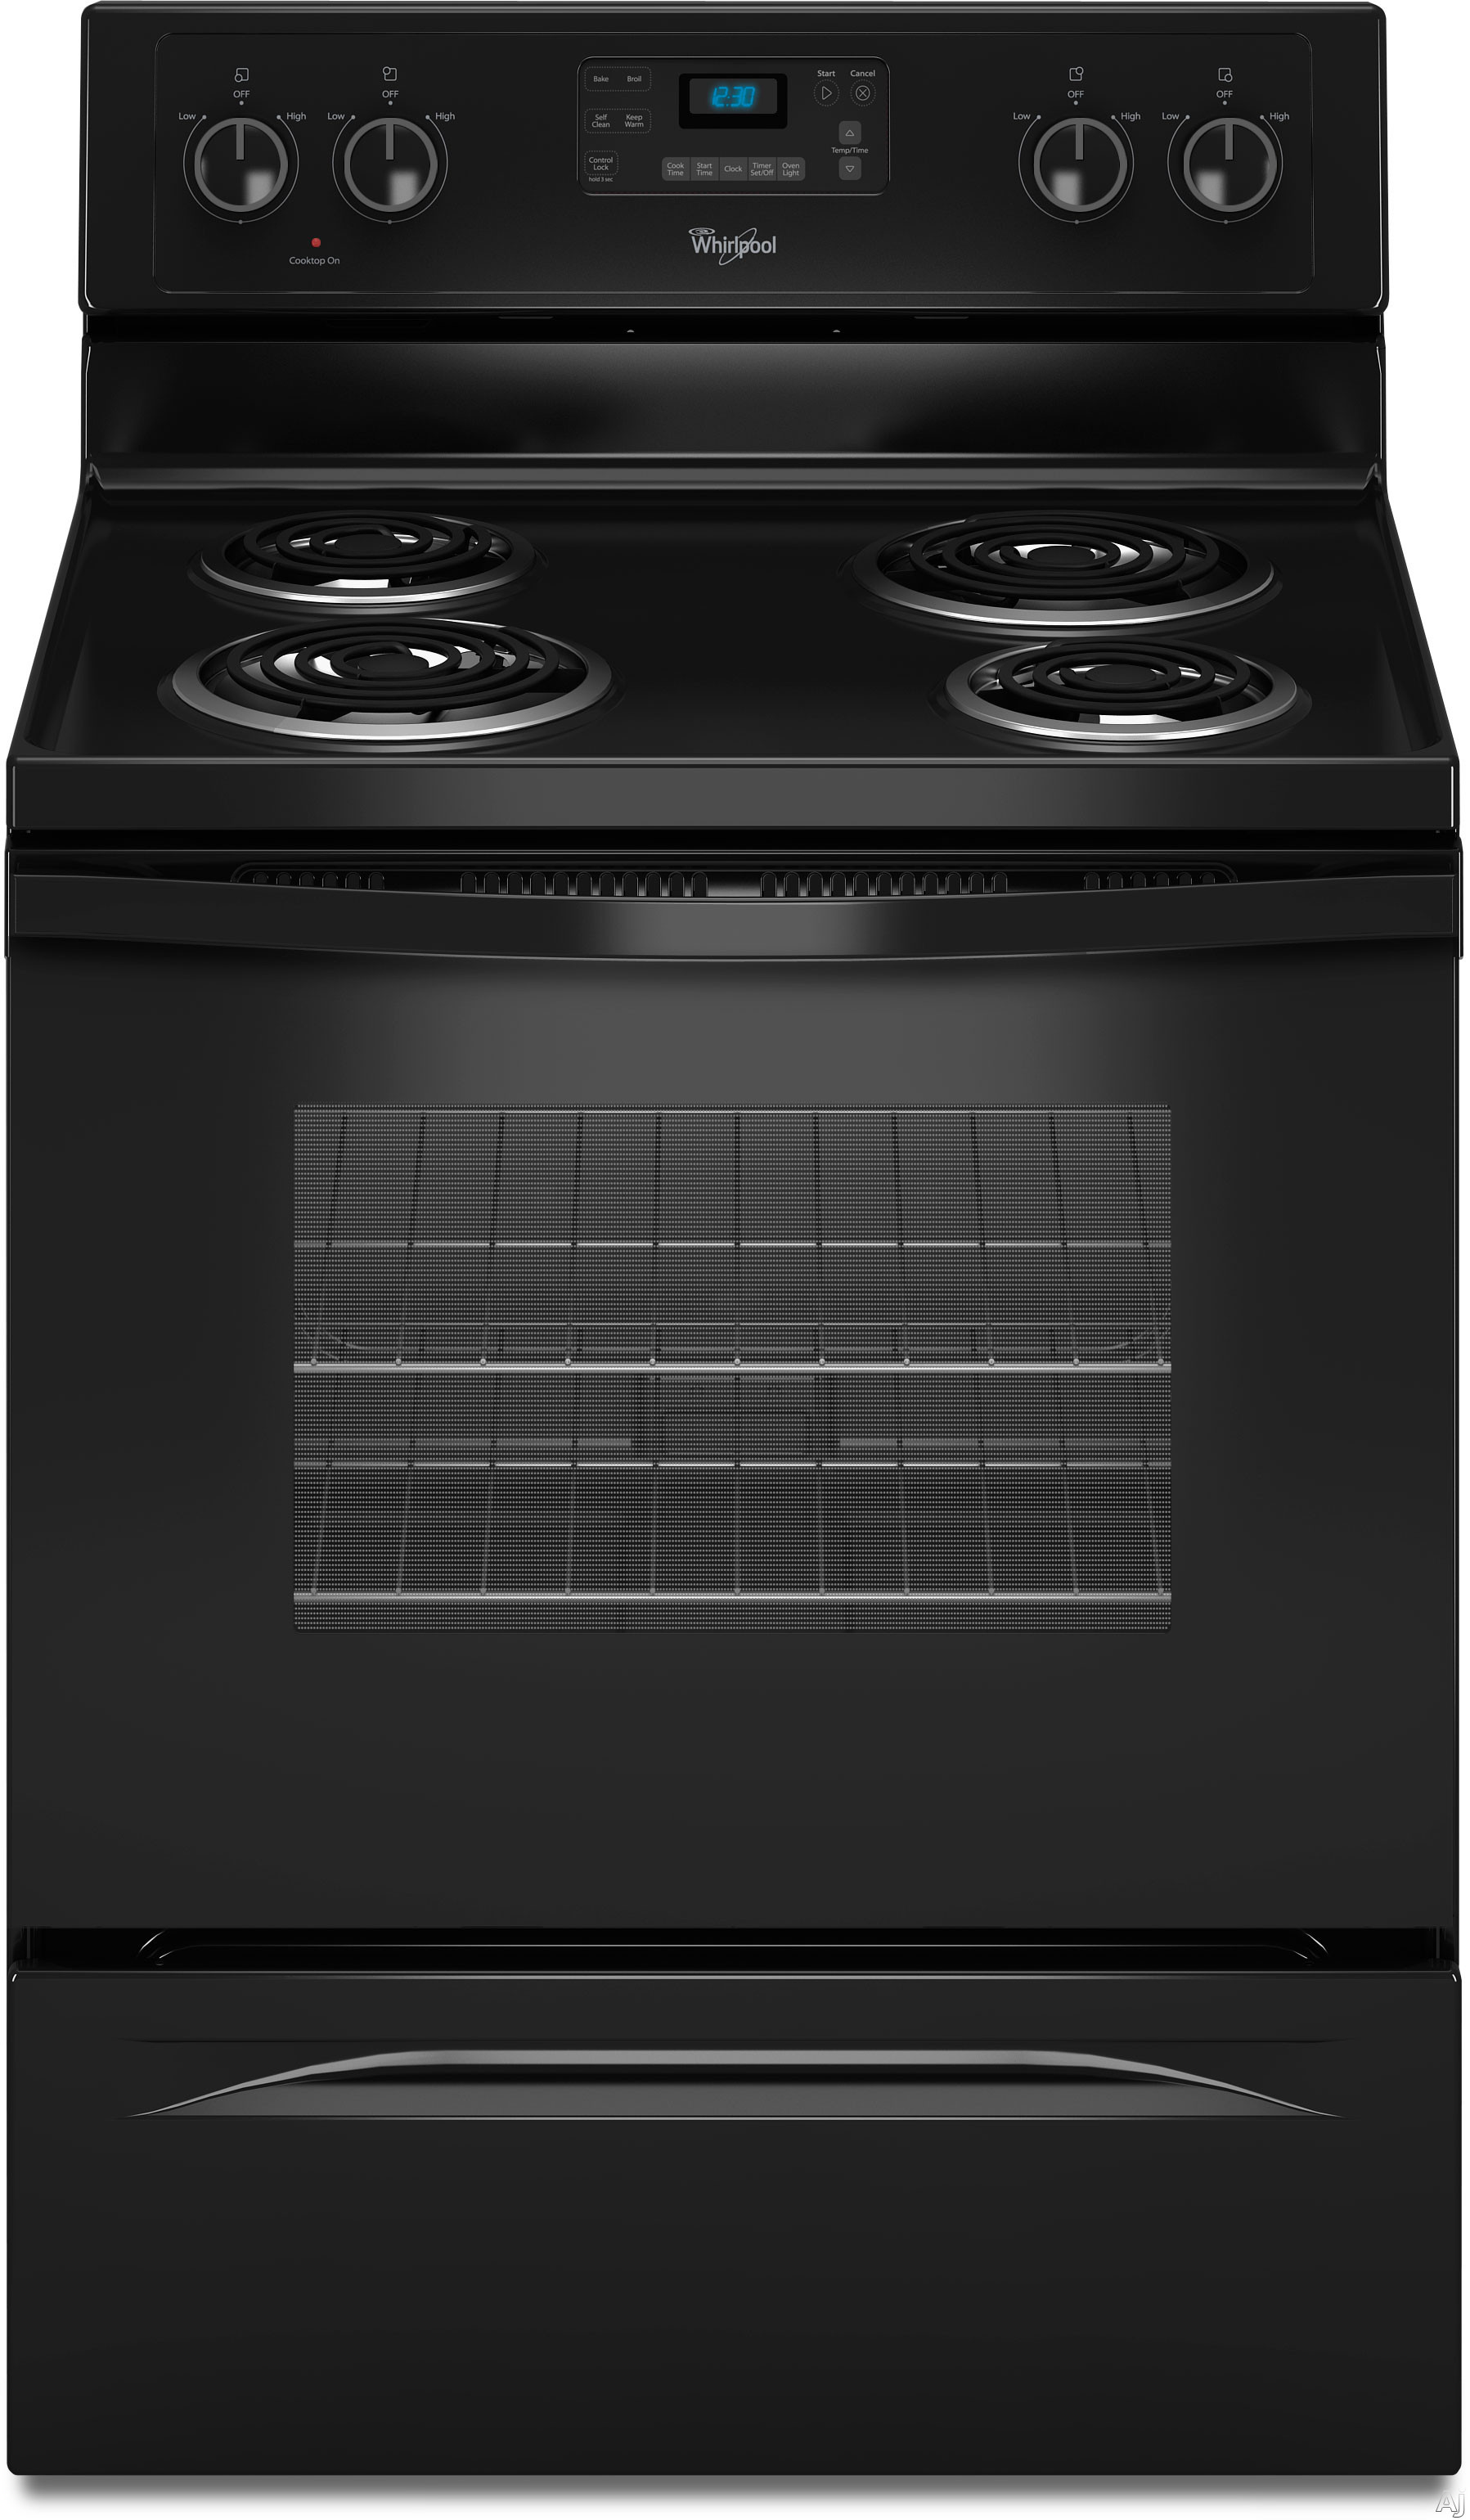 whirlpool wfc310s0ab 30 freestanding electric range with 4 coiled elements 48 cu ft selfcleaning. Black Bedroom Furniture Sets. Home Design Ideas